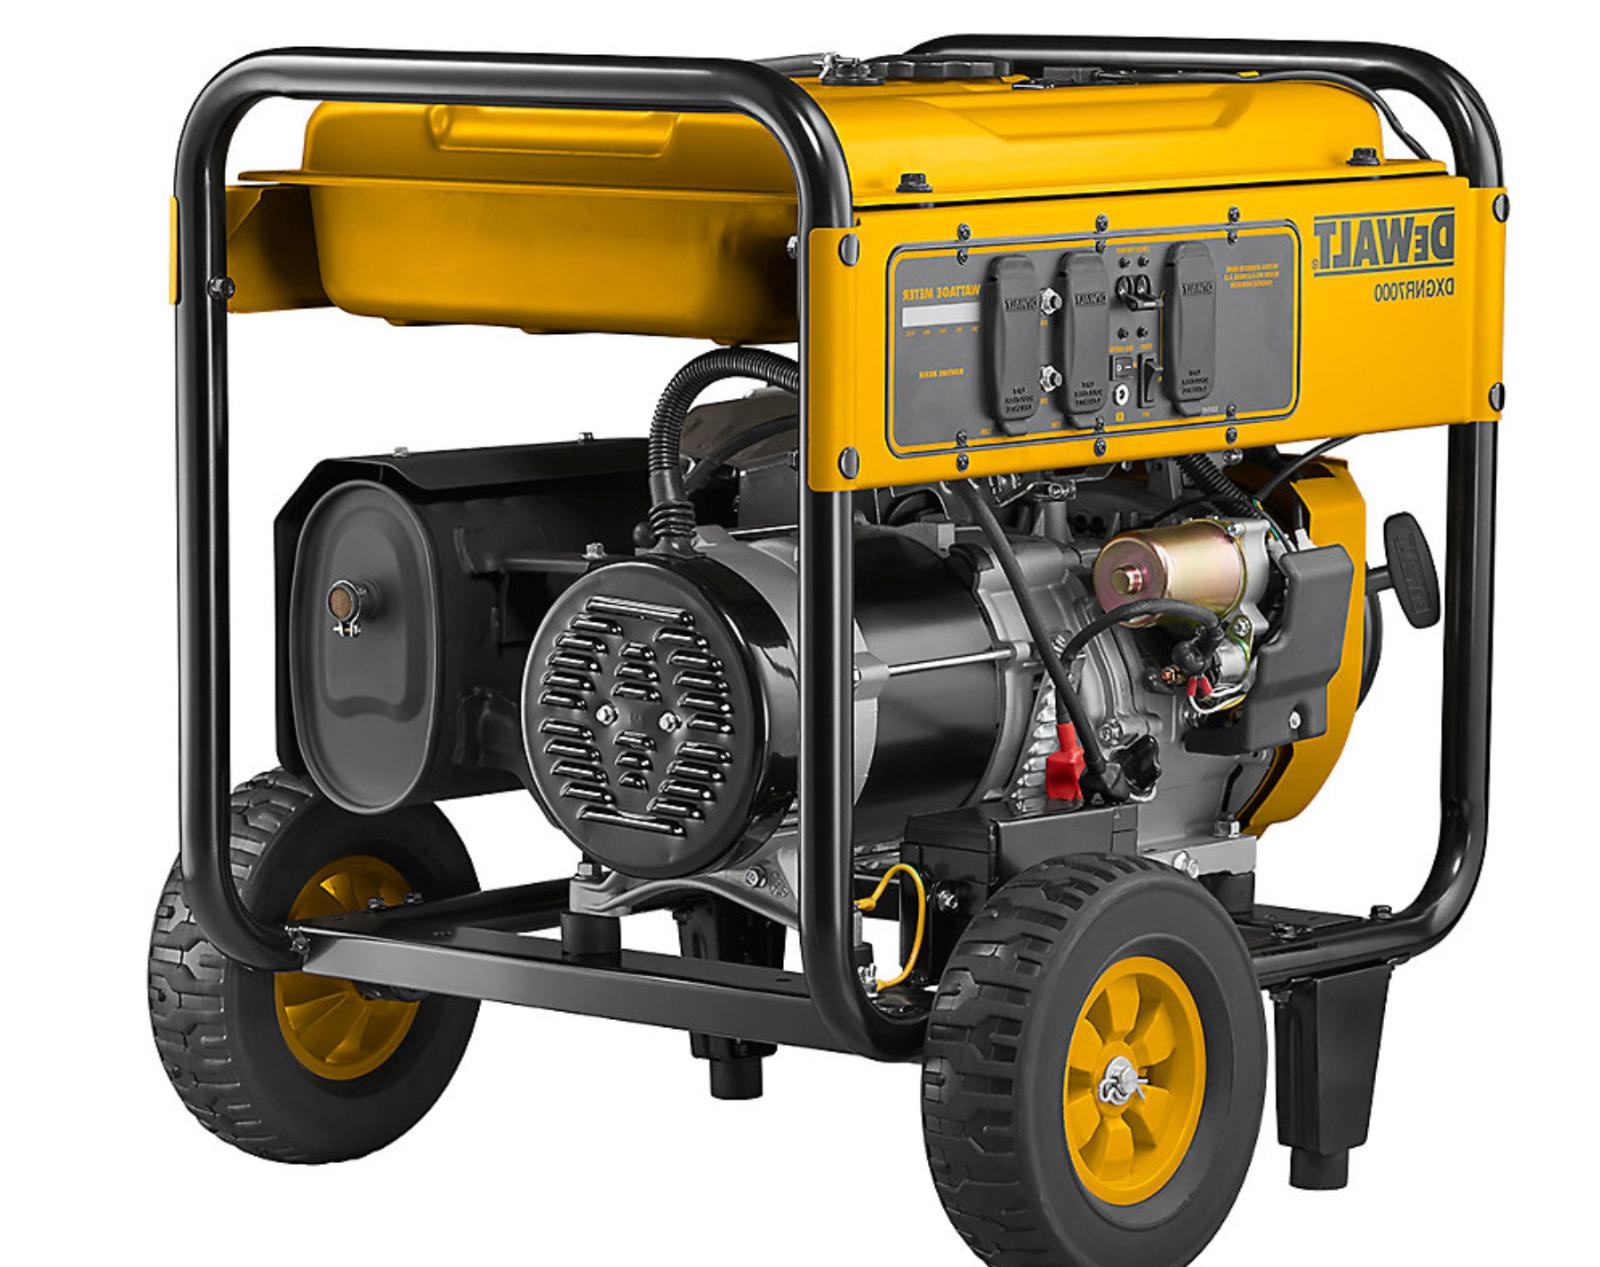 electric start generator dxgnr7000 with gfci outlets